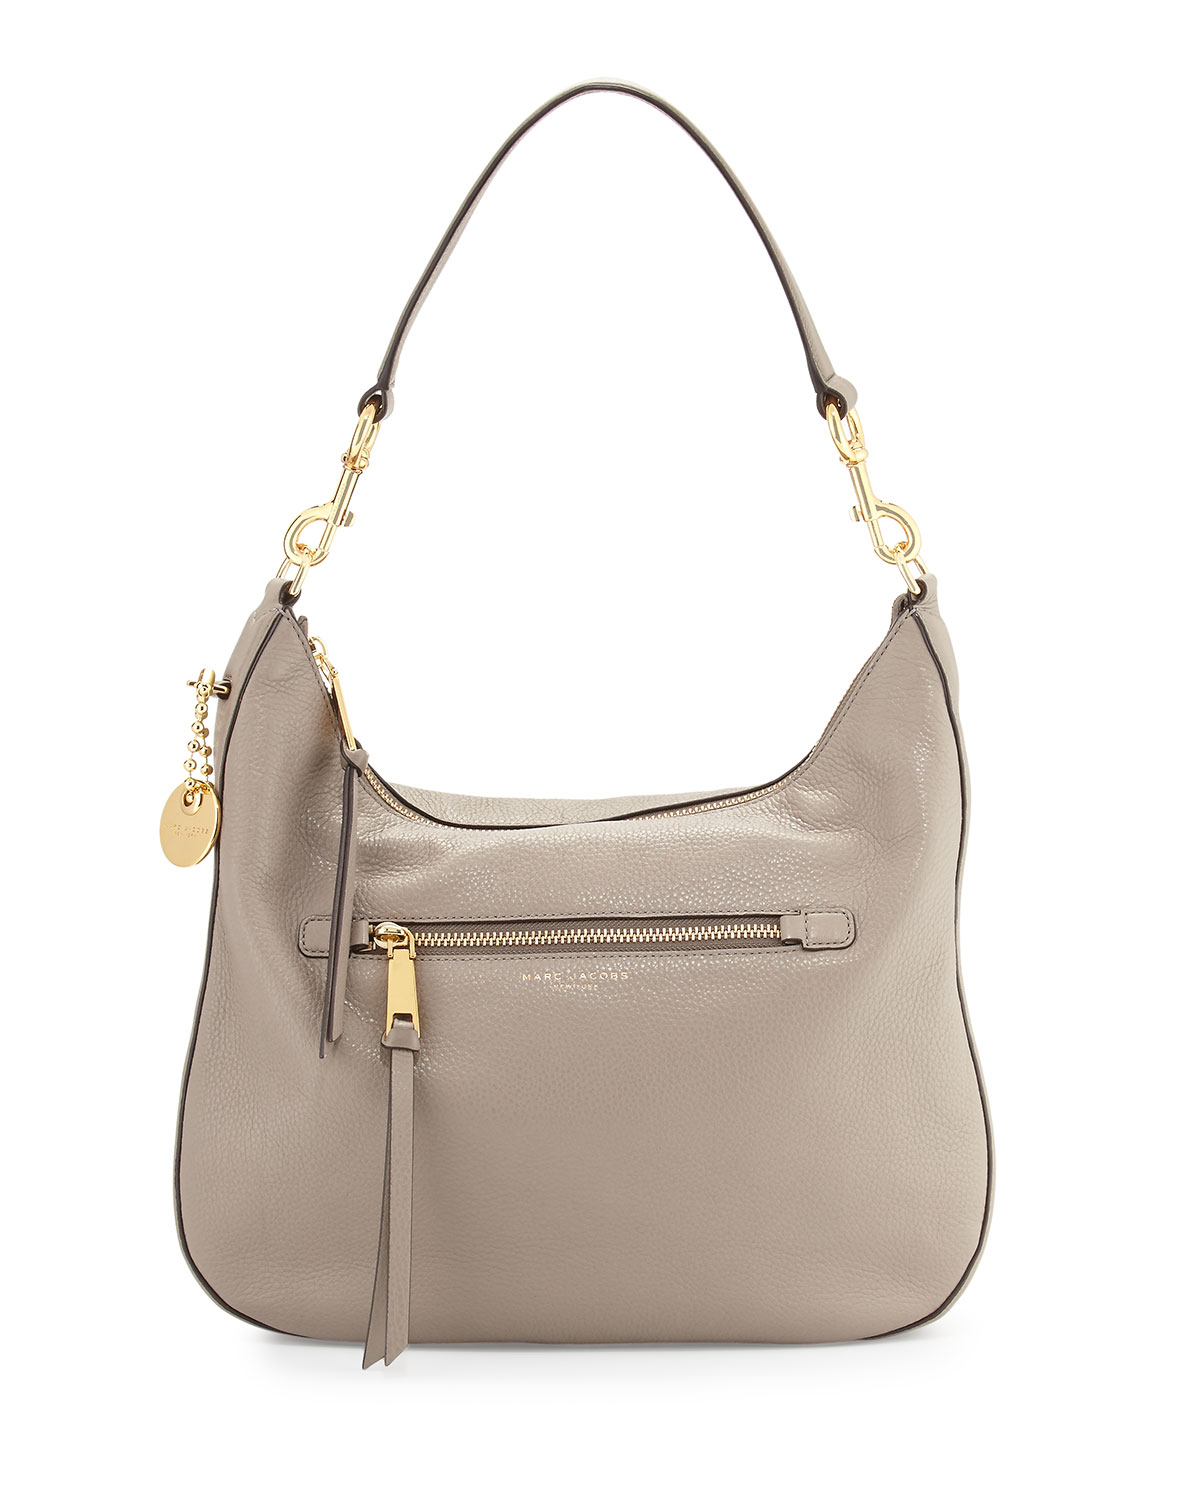 b85ee97a8 Marc Jacobs Recruit Leather Hobo Bag | Neiman Marcus